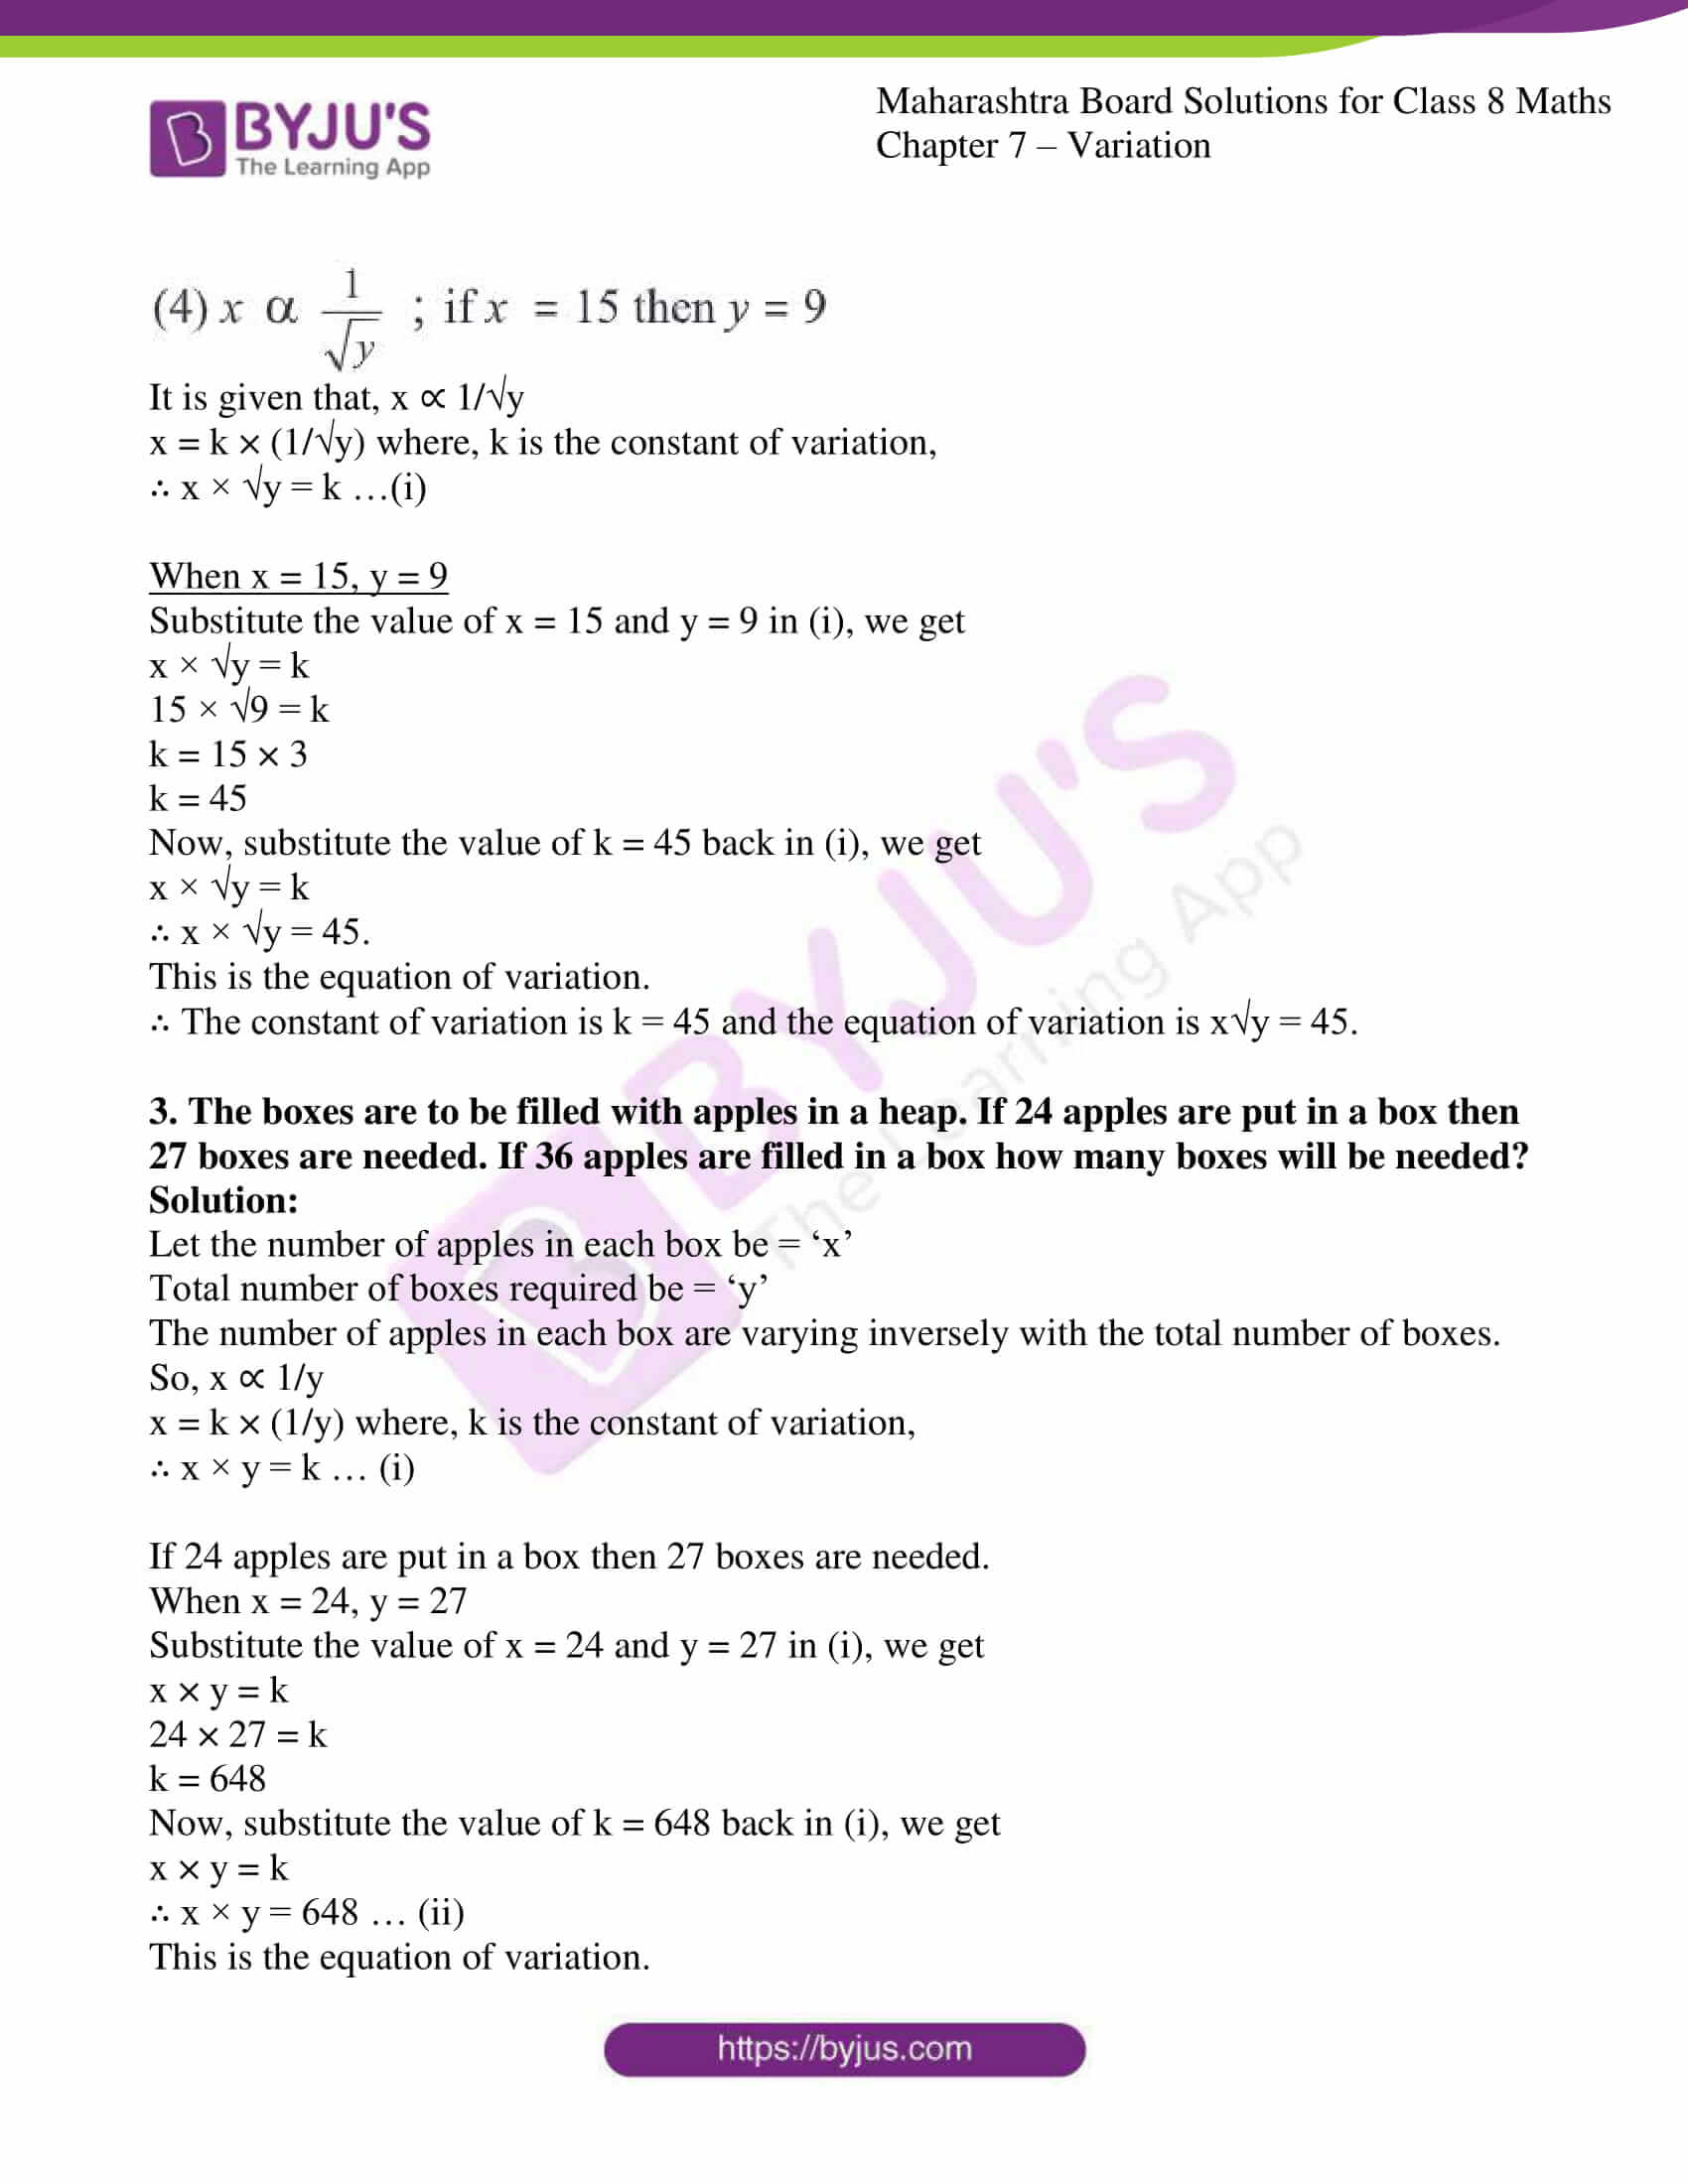 msbshse sol for class 8 maths chapter 7 09